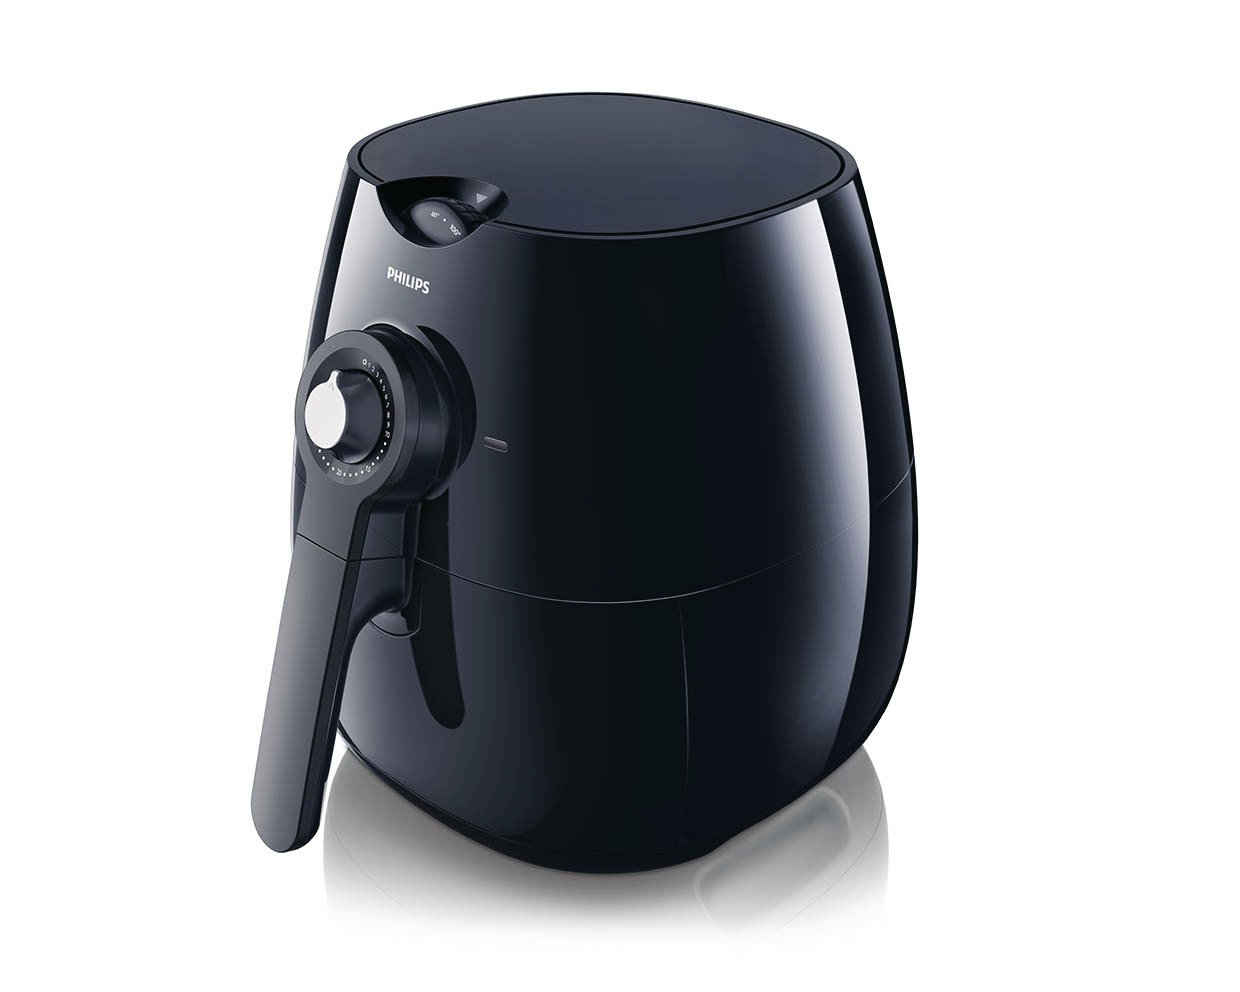 Amazon.es: Philips HD9220/20 - AirFryer, freidora por aire caliente